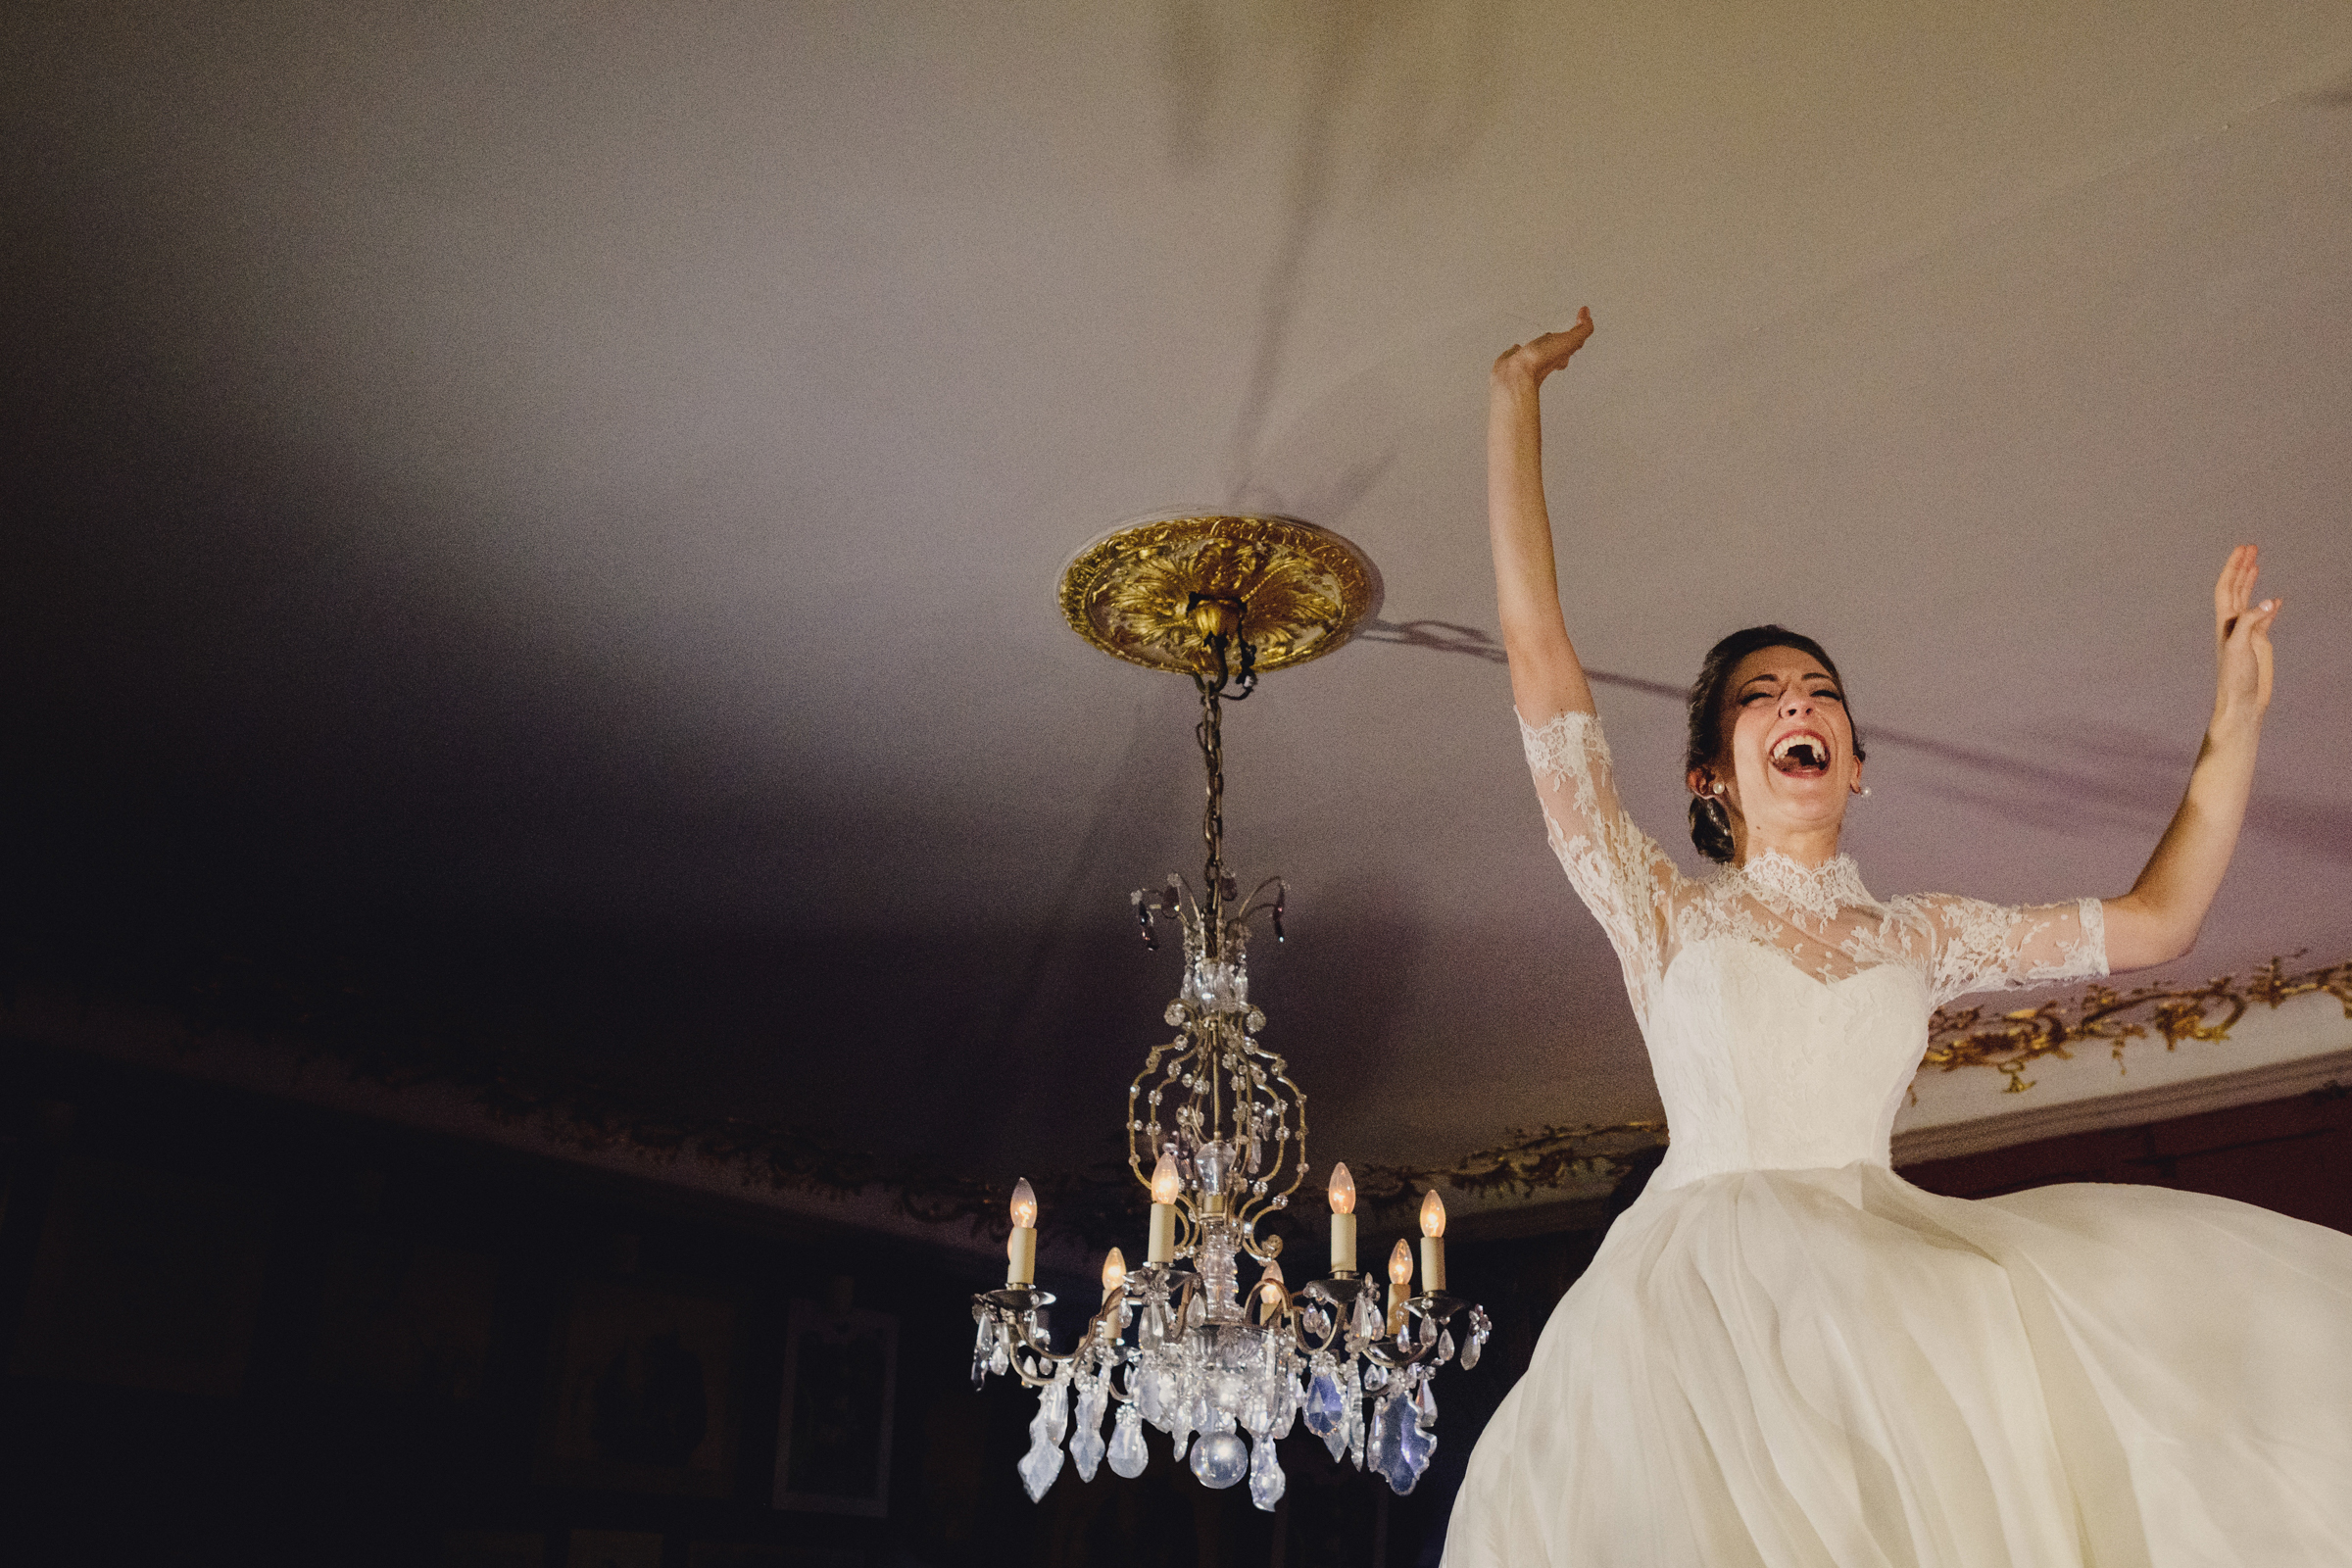 Bride raises the roof during hora dance - photo by MIKI Studios in London